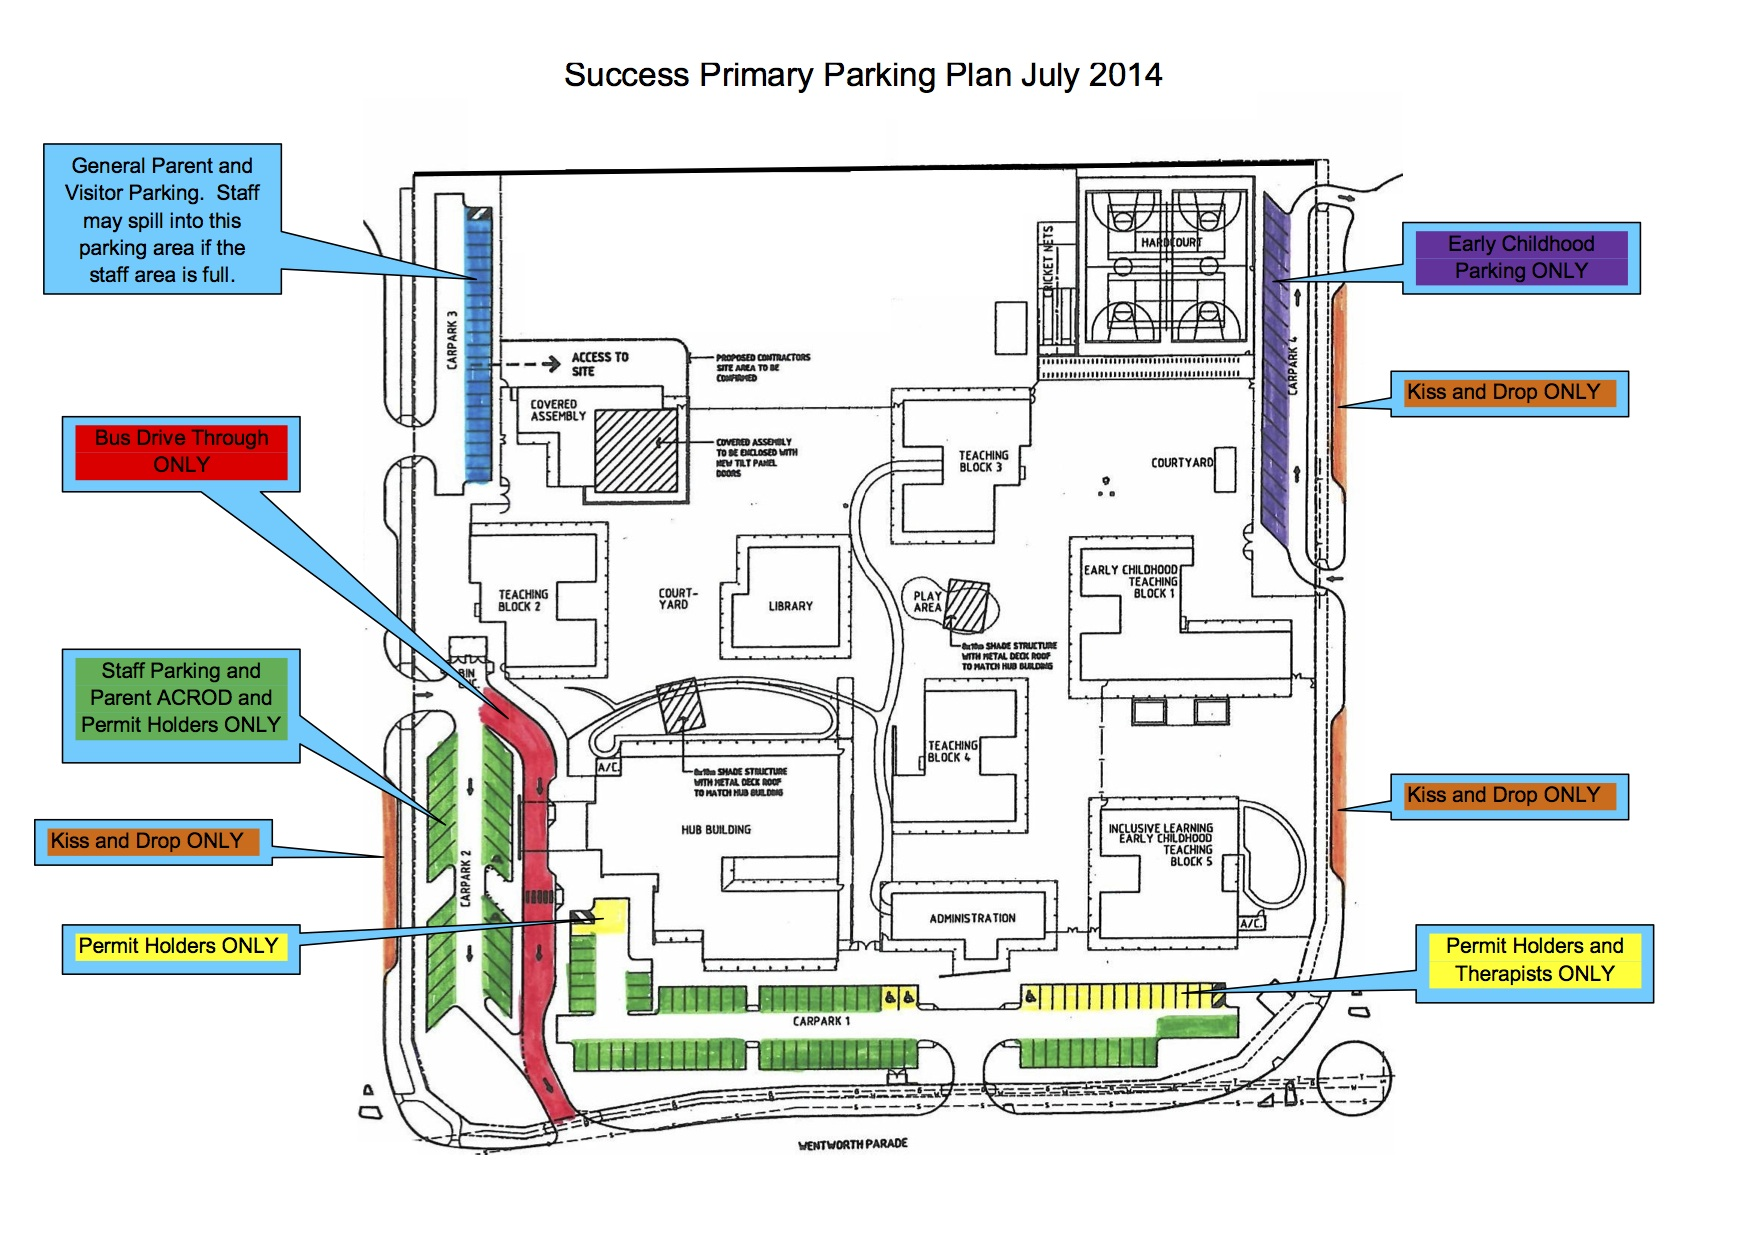 Parking Plan July 2014 copy